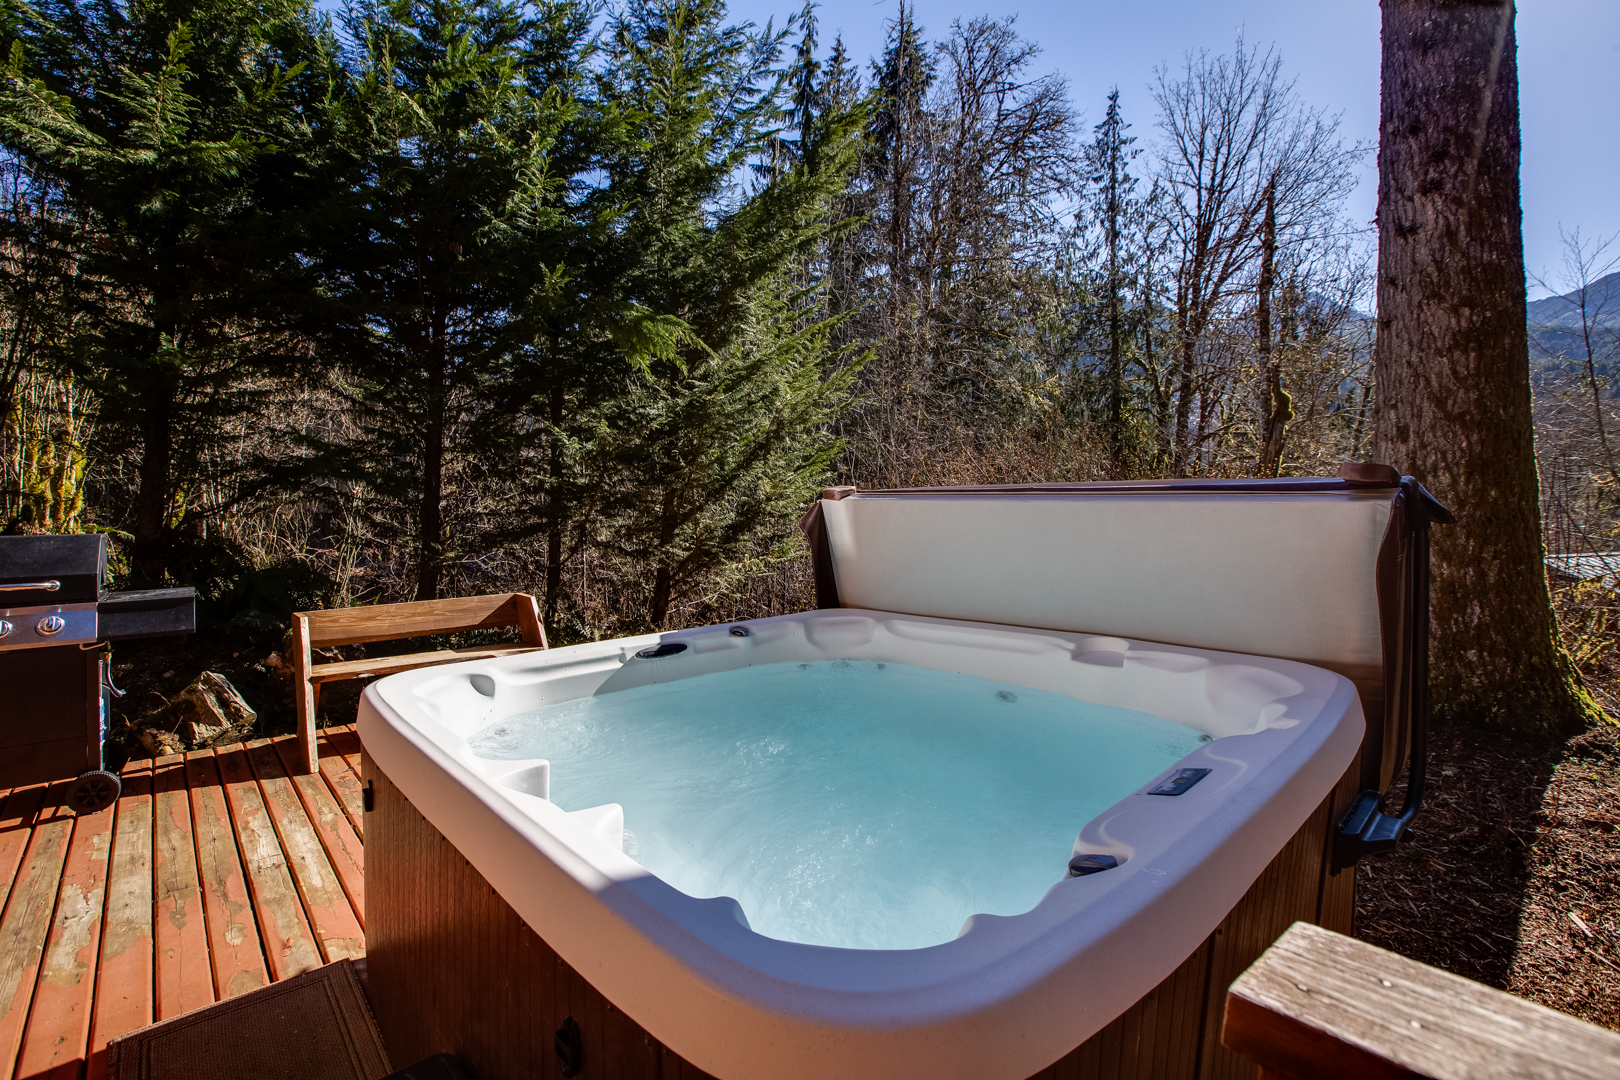 Another view of hot tub